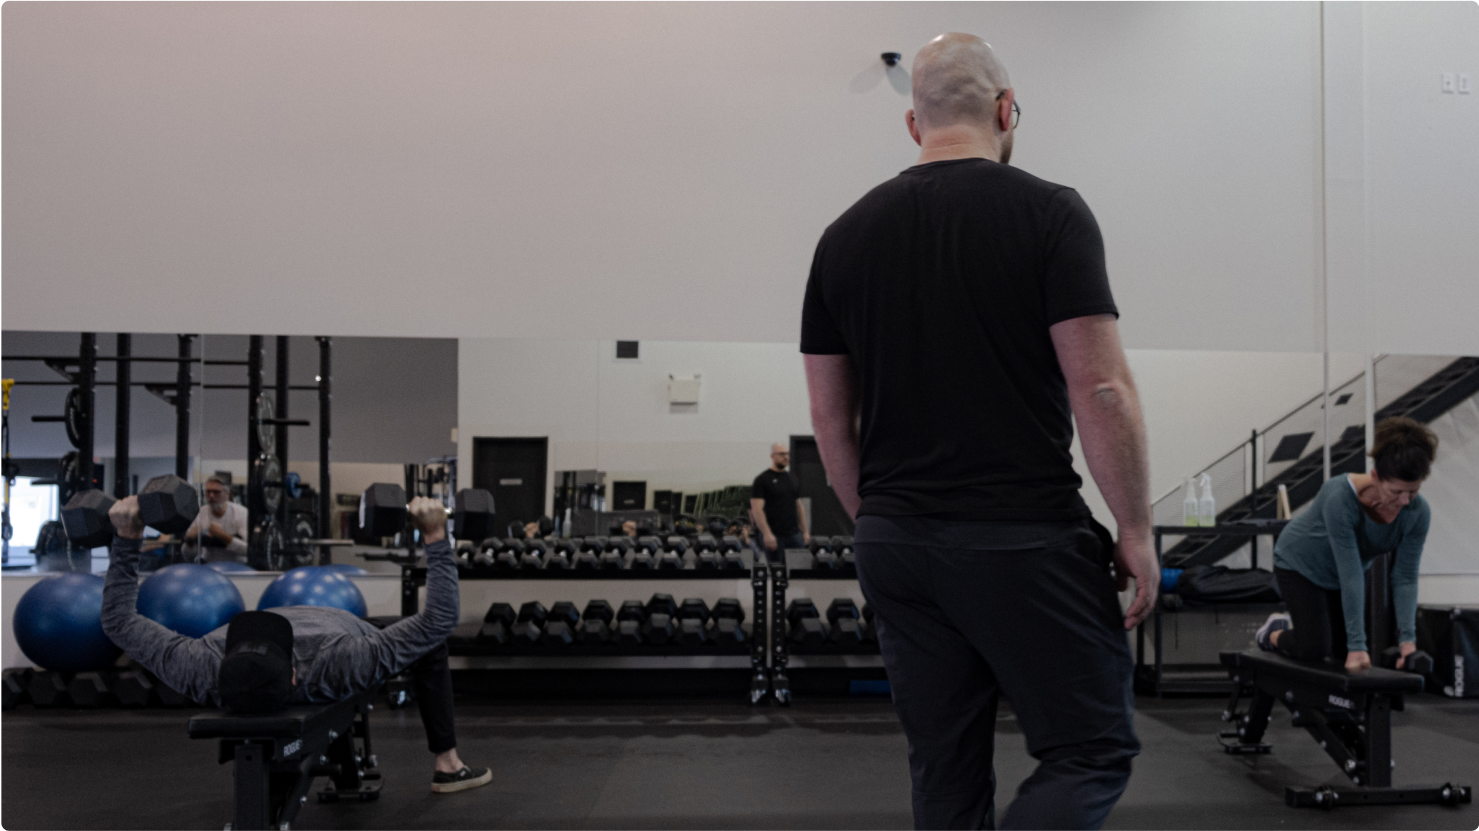 Paul Irwin. Integro Wellness Studio. Move better. Services include: Personal Training, Clinical Services, Dietician and Online Training.